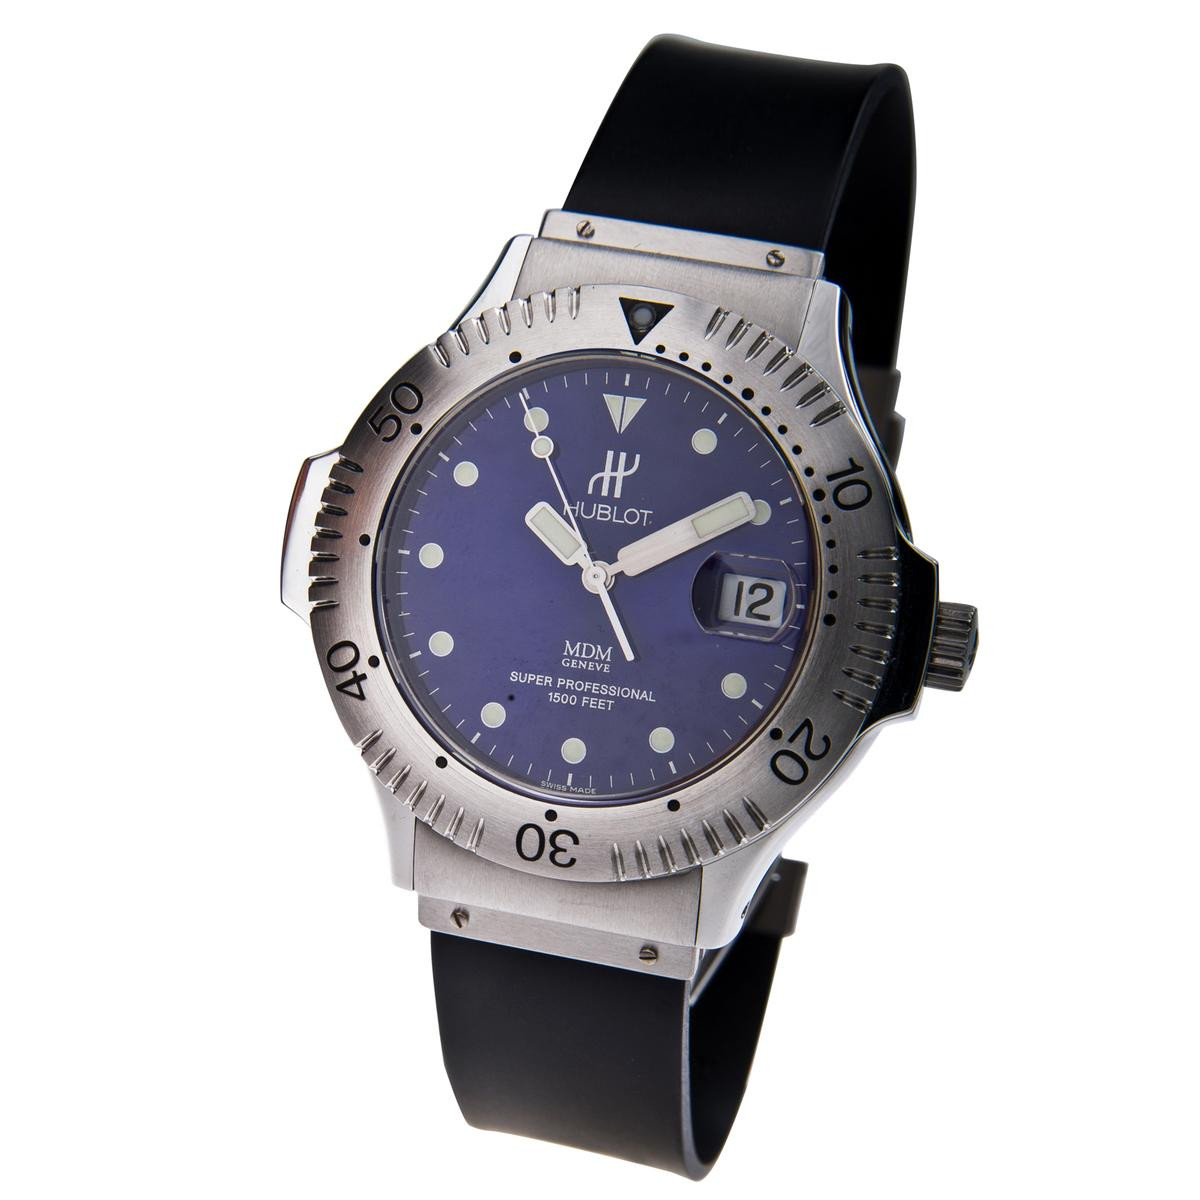 Pre-owned Hublot Super Professional 1500M with Rotating Bezel